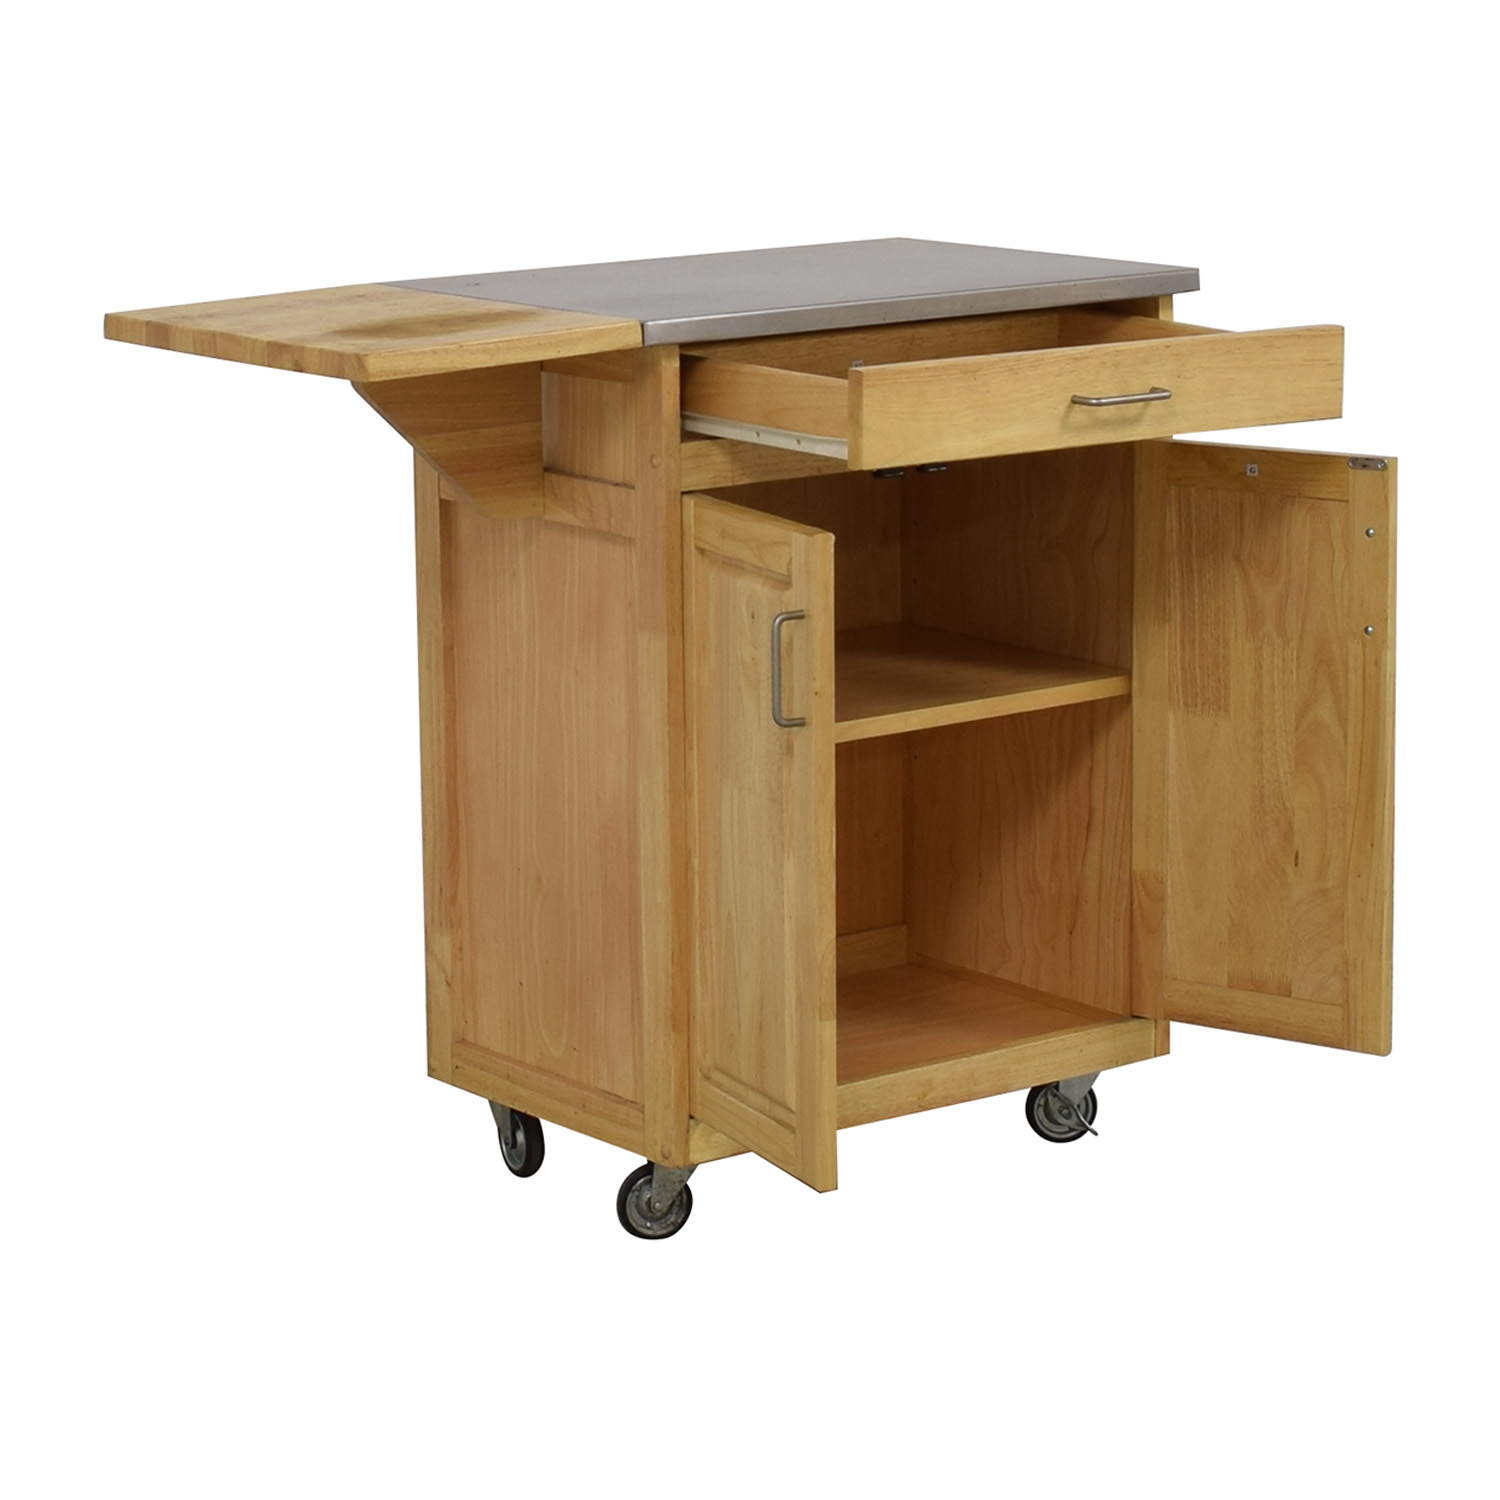 Bed Bath & Beyond Bed Bath & Beyond Wooden Kitchen Cart used